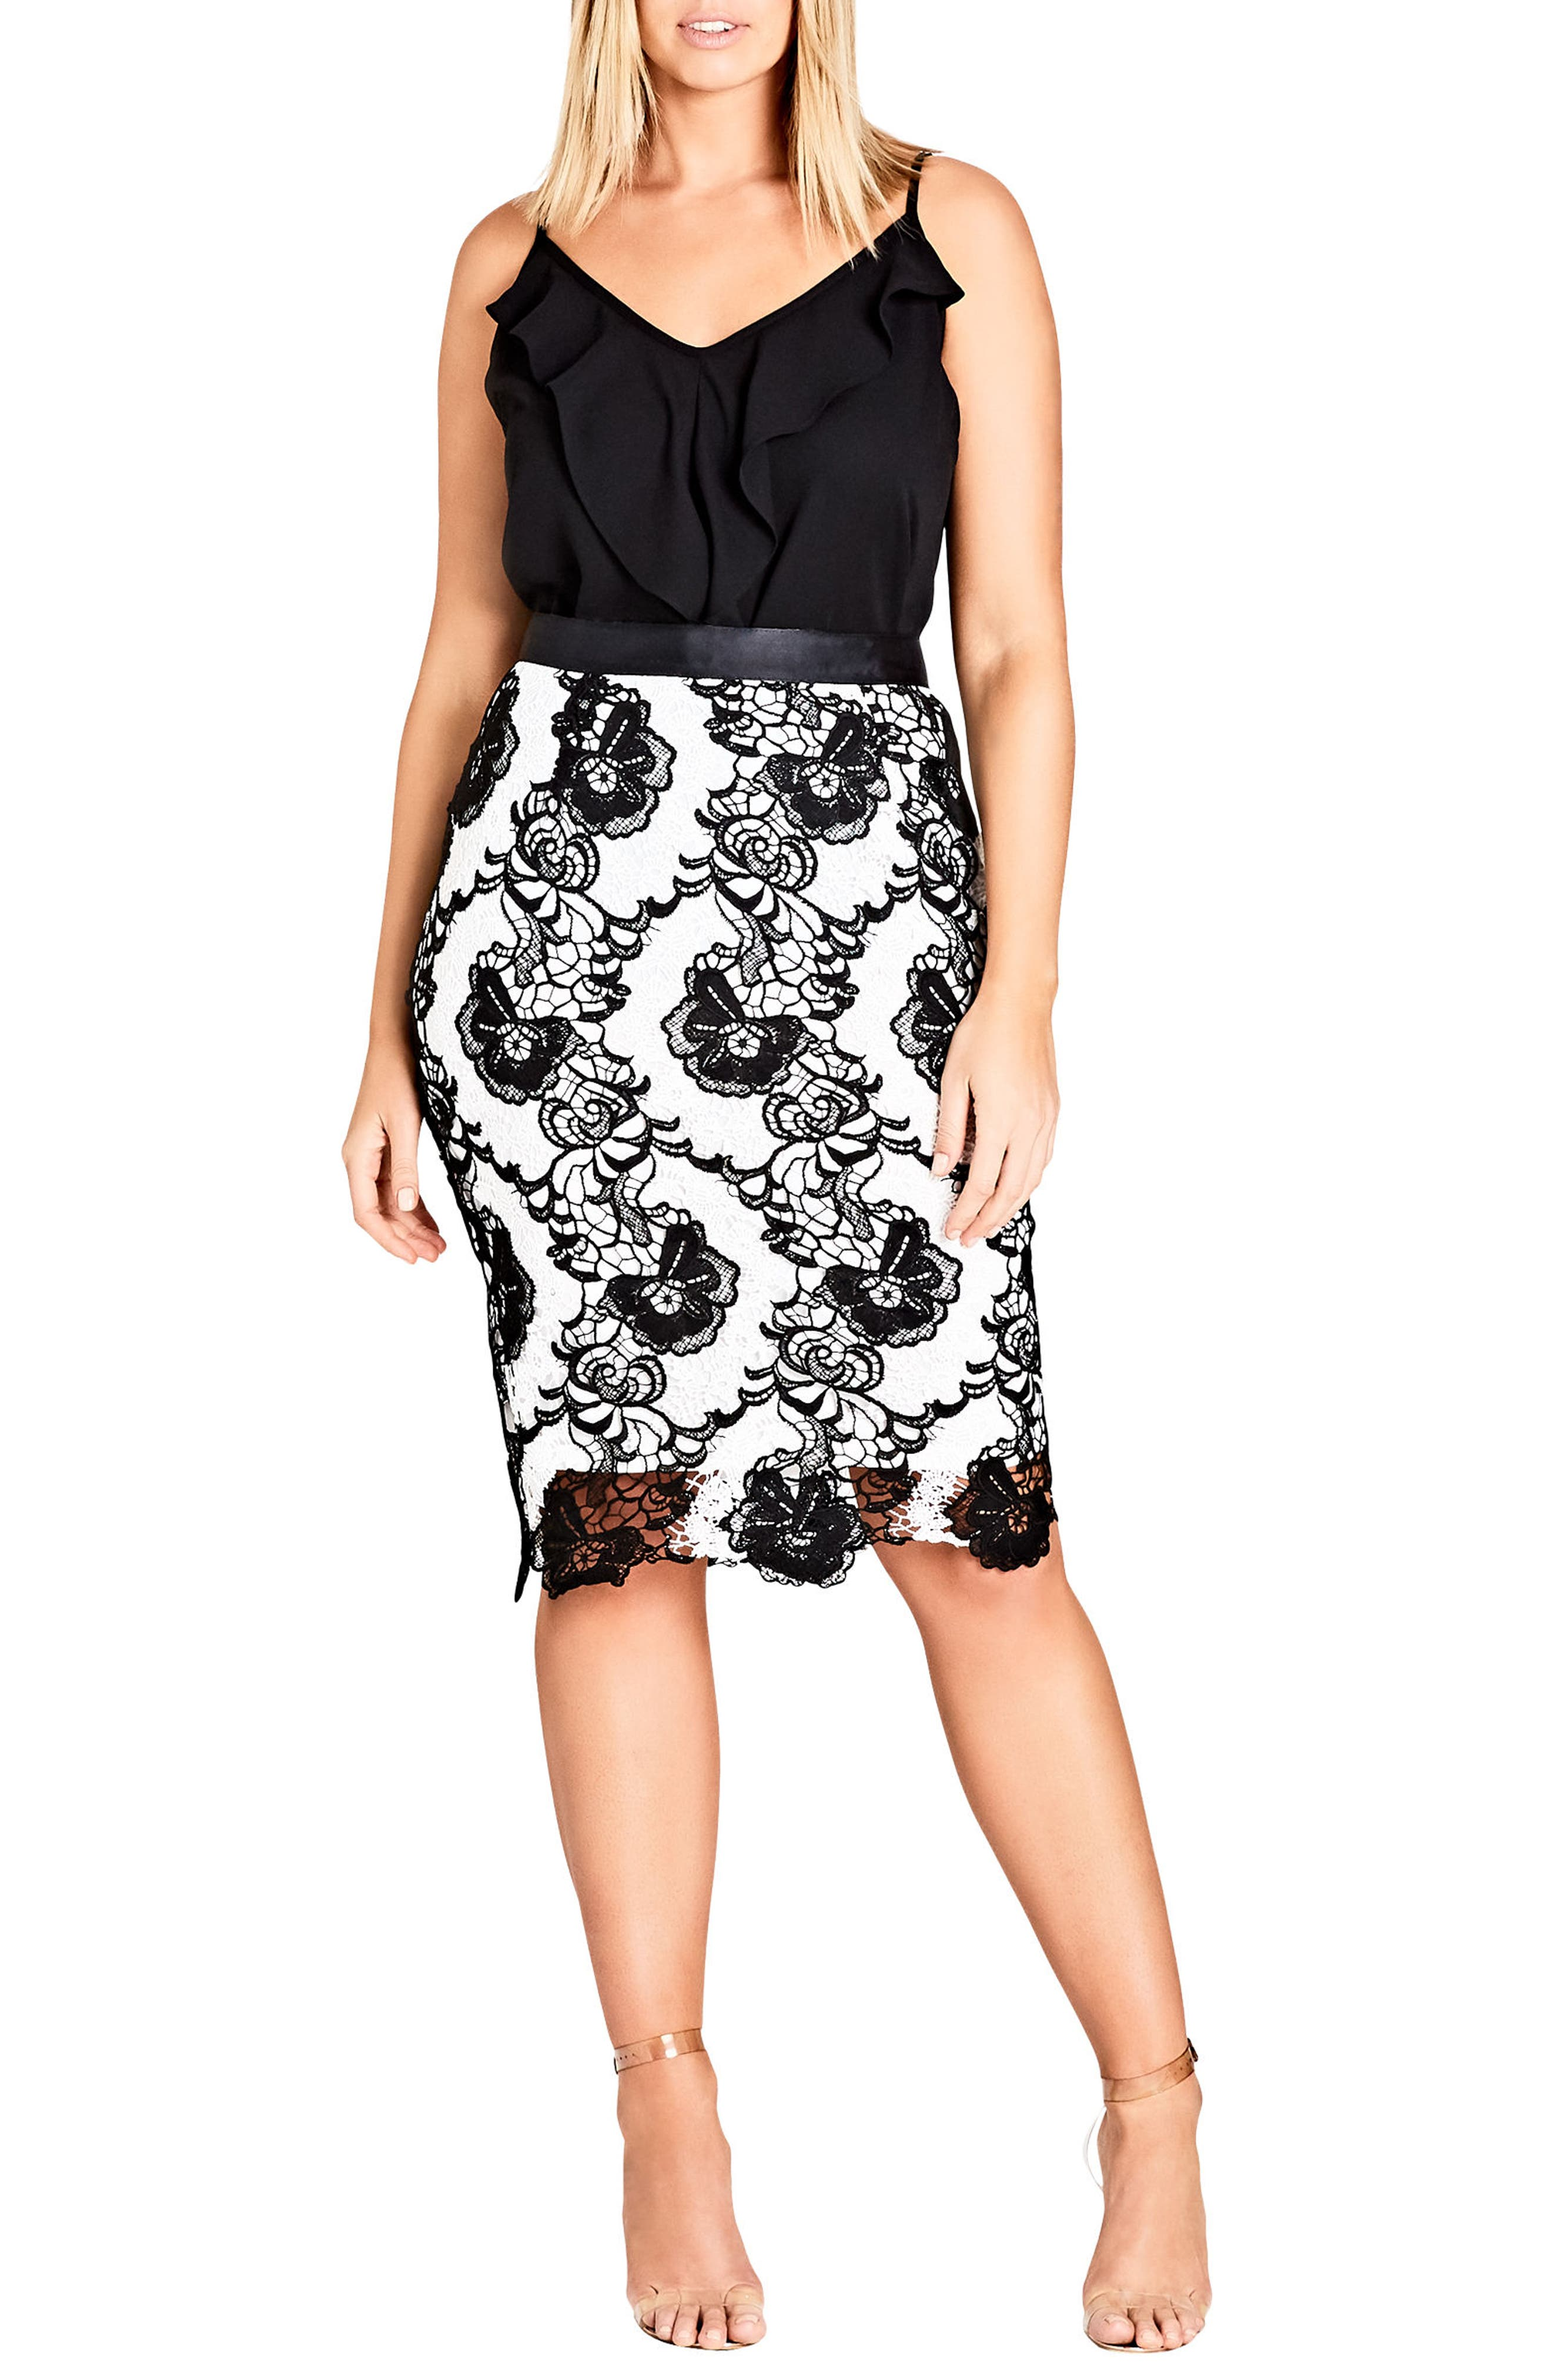 City Chic Cha Cha Floral Embroidered Skirt (Plus Size)